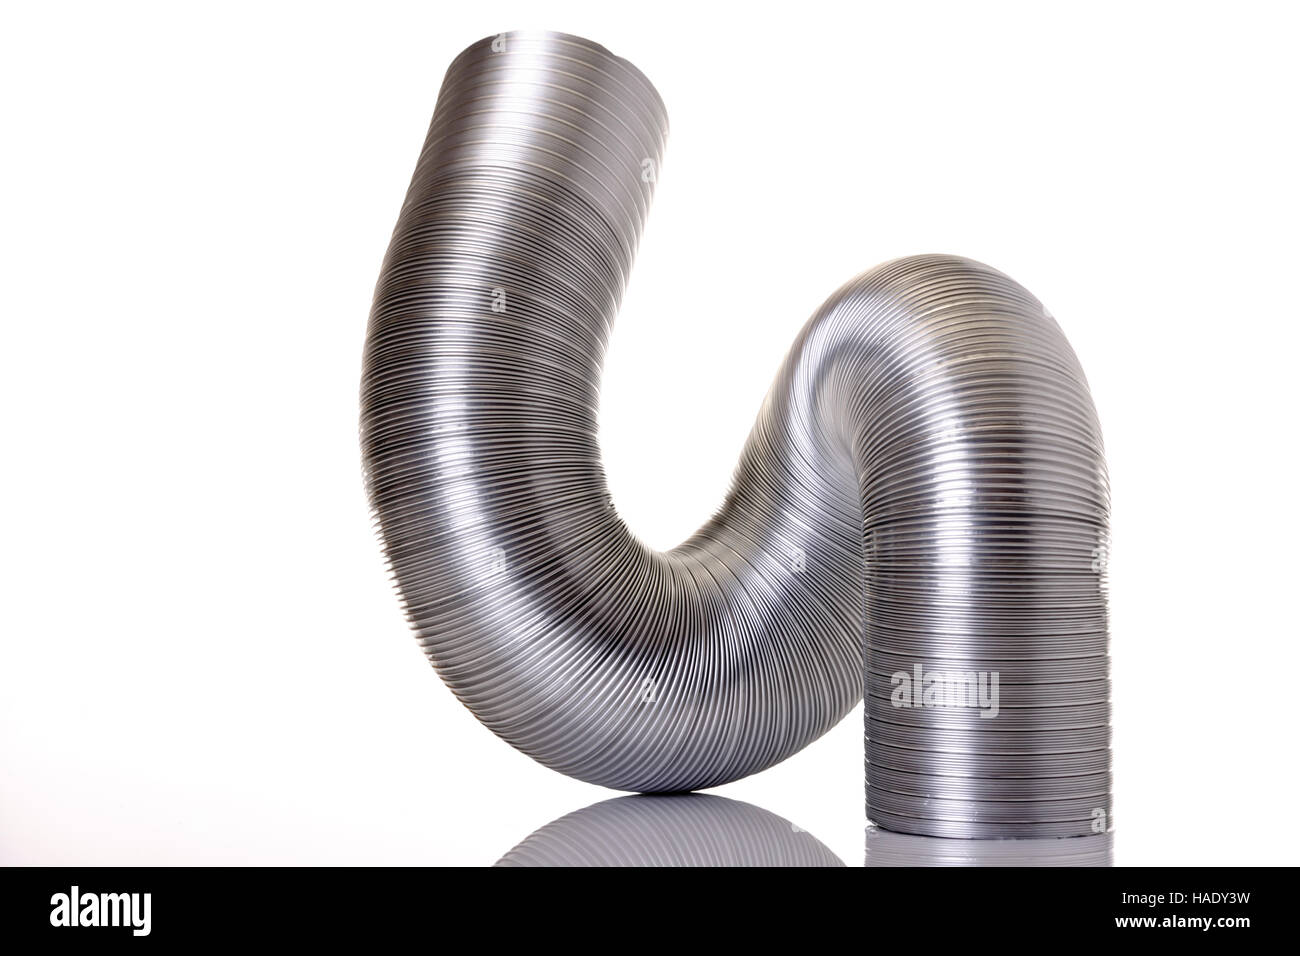 Flexible Rohre Flexible Tube Stock Photo 126925789 Alamy